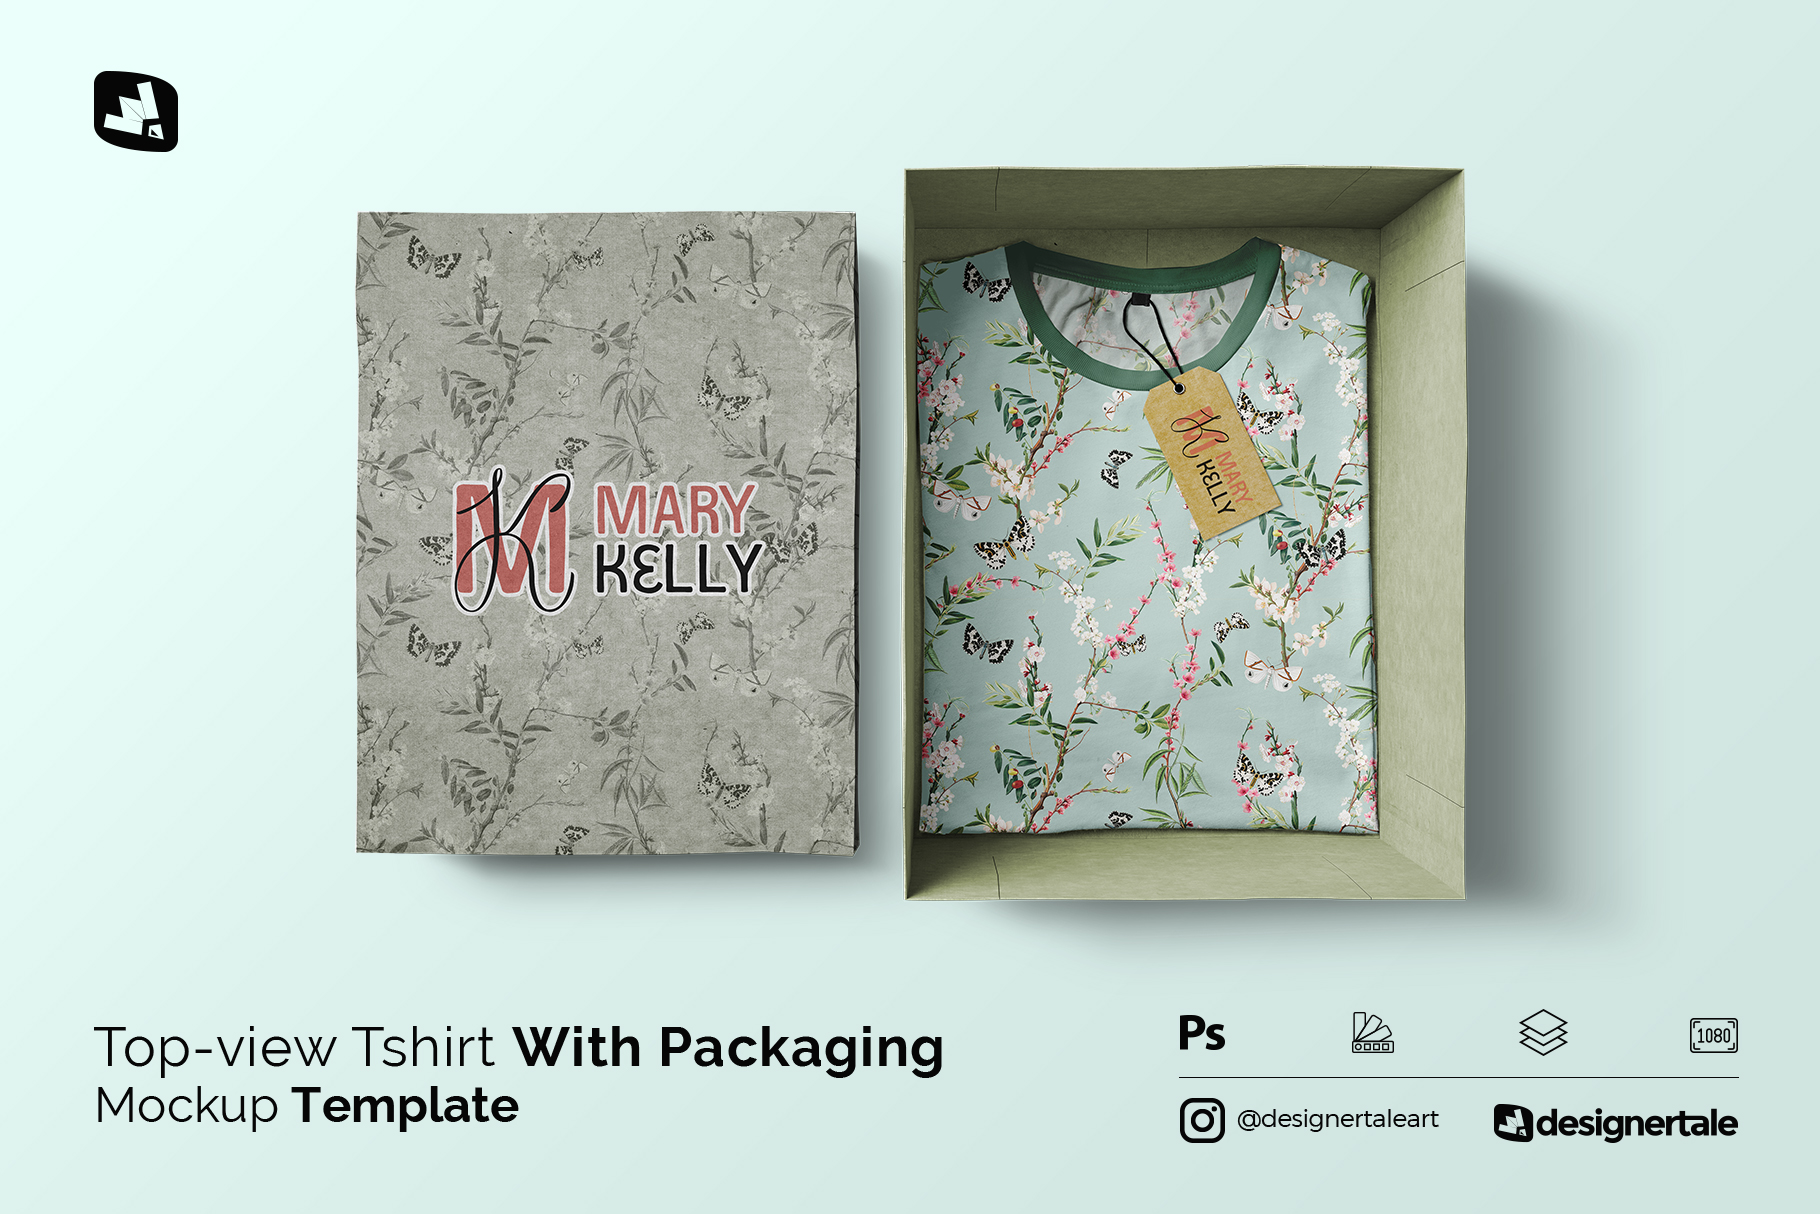 tshirt with packaging mockup